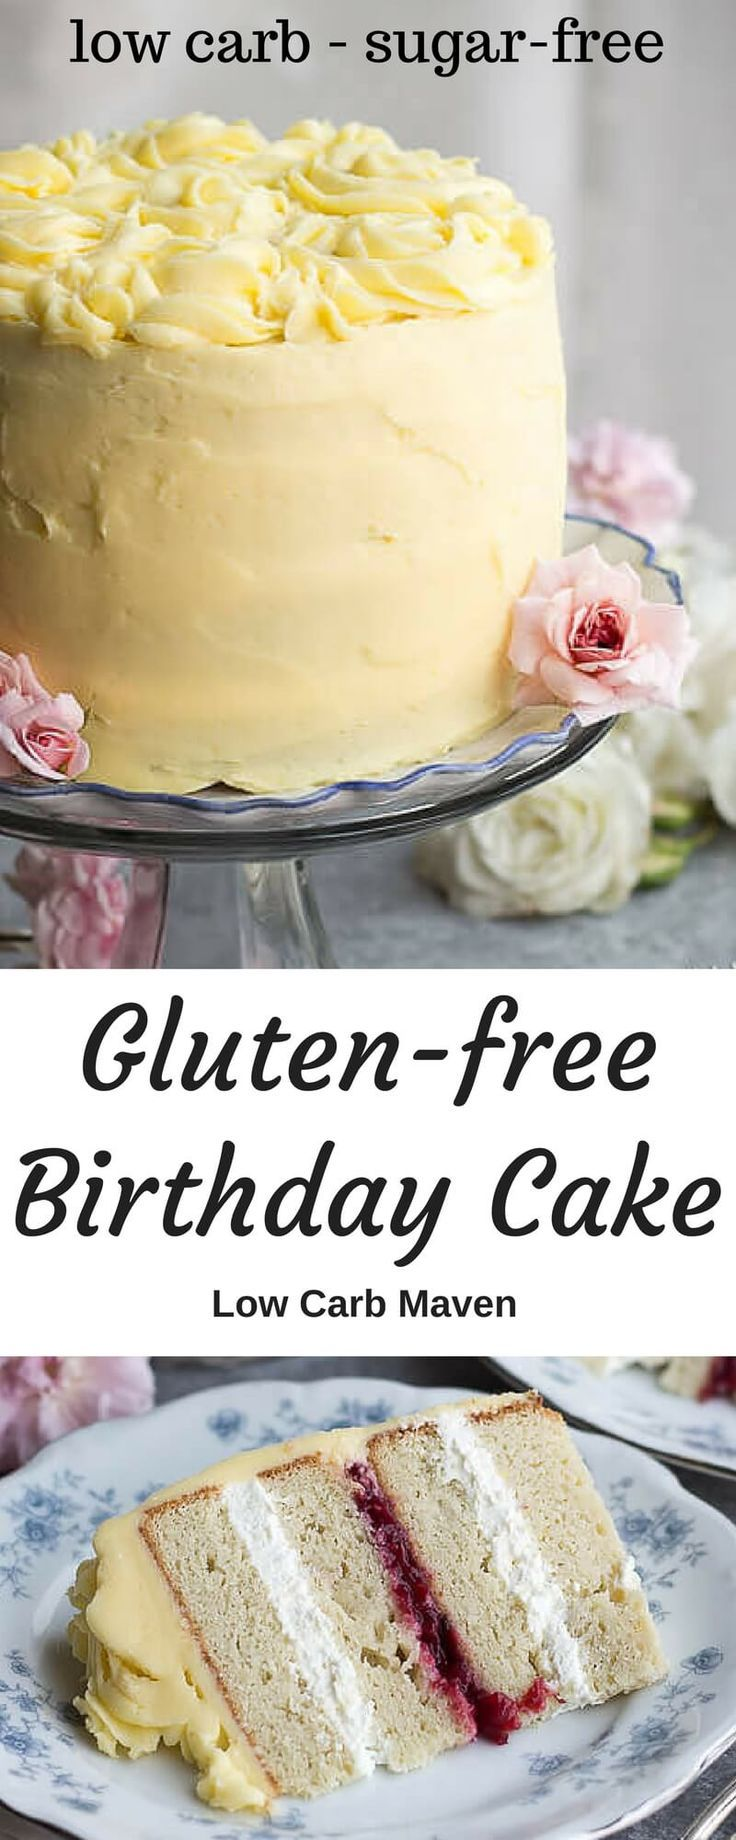 Diabetes What Causes It Gluten free birthday cake Free birthday